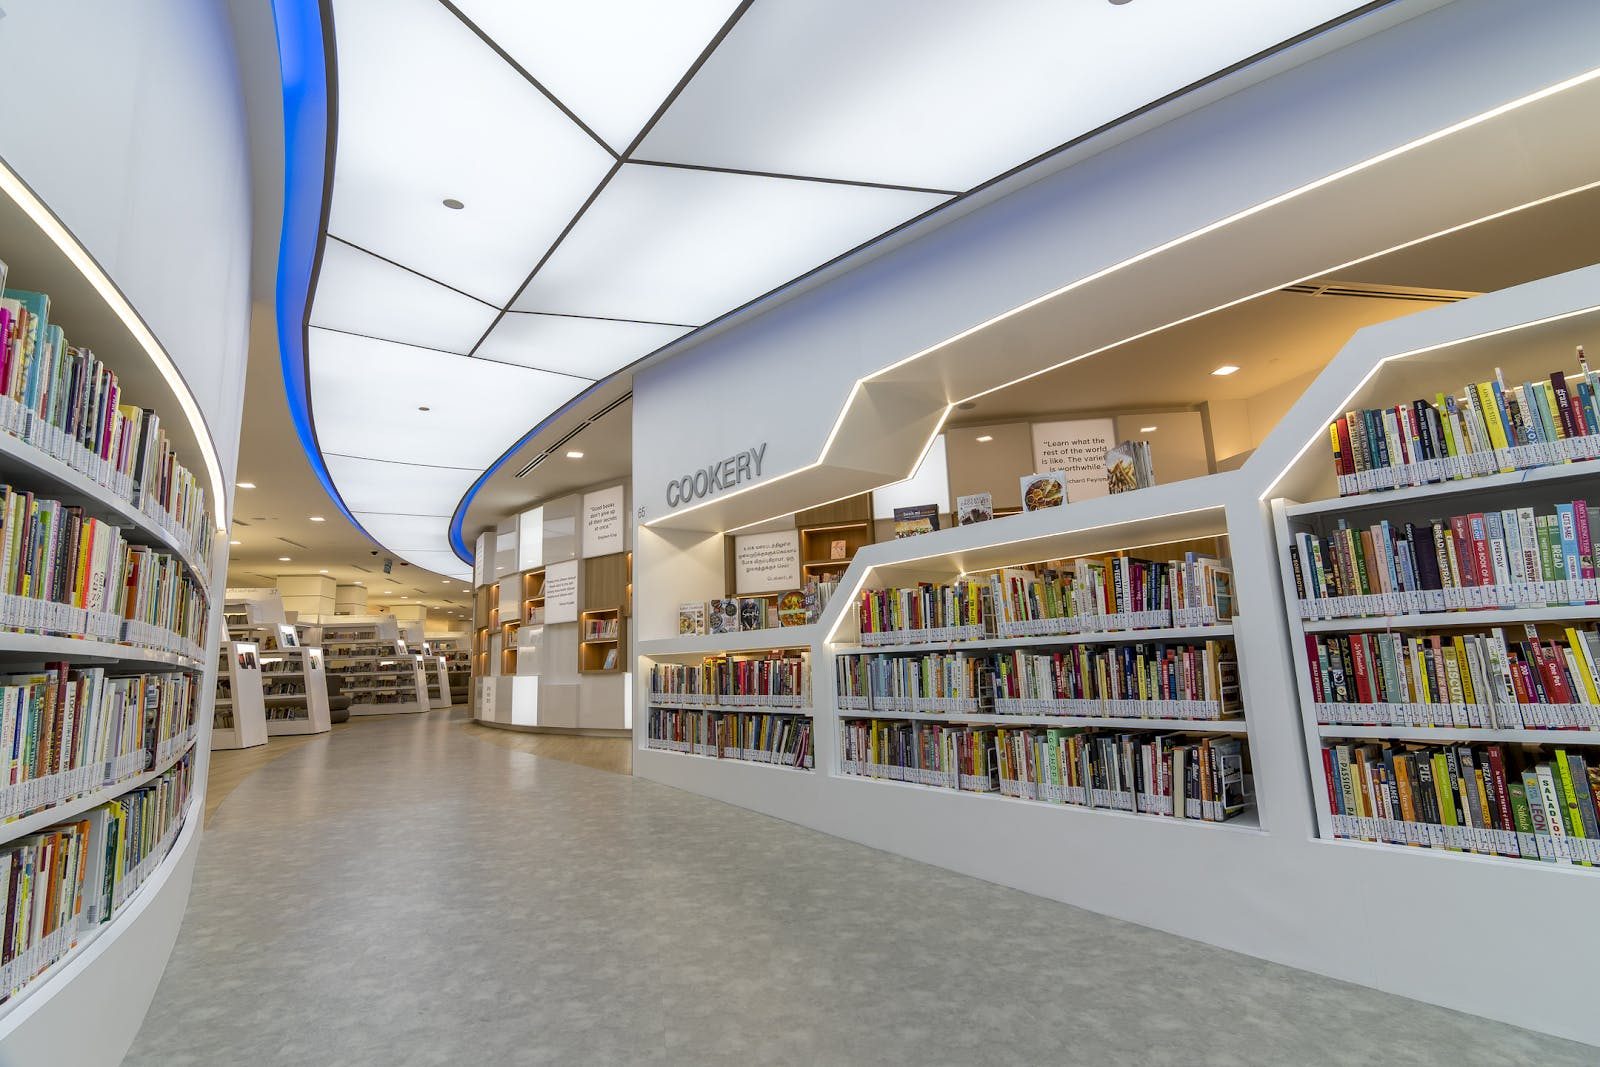 Cookery Section of Yishun Public Library